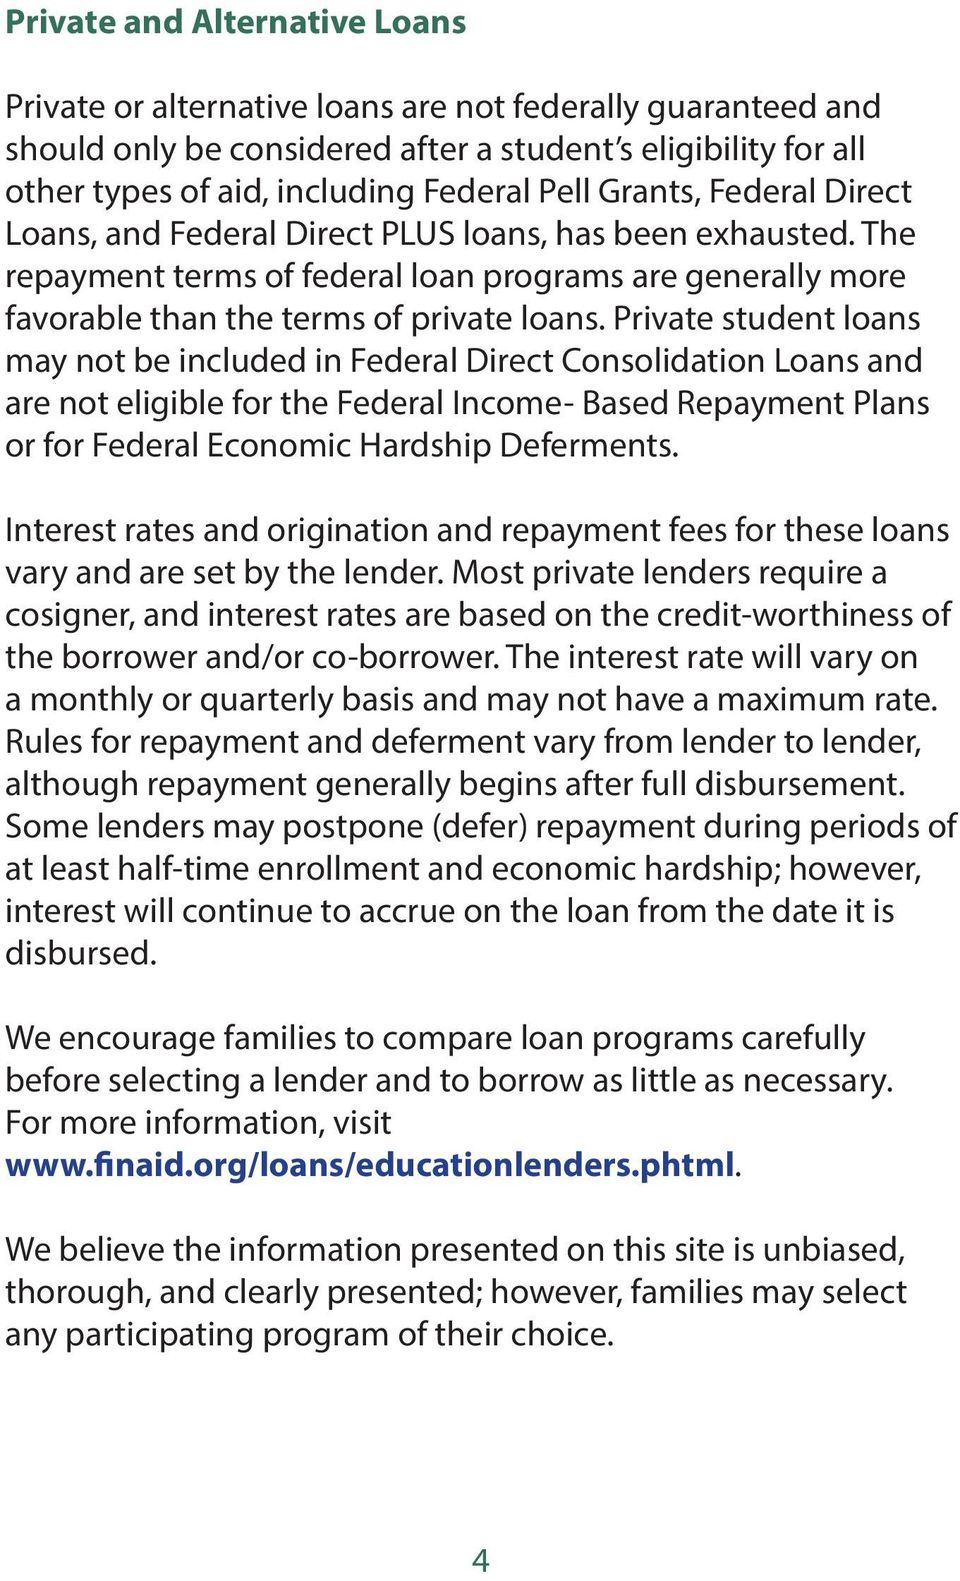 Private student loans may not be included in Federal Direct Consolidation Loans and are not eligible for the Federal Income- Based Repayment Plans or for Federal Economic Hardship Deferments.